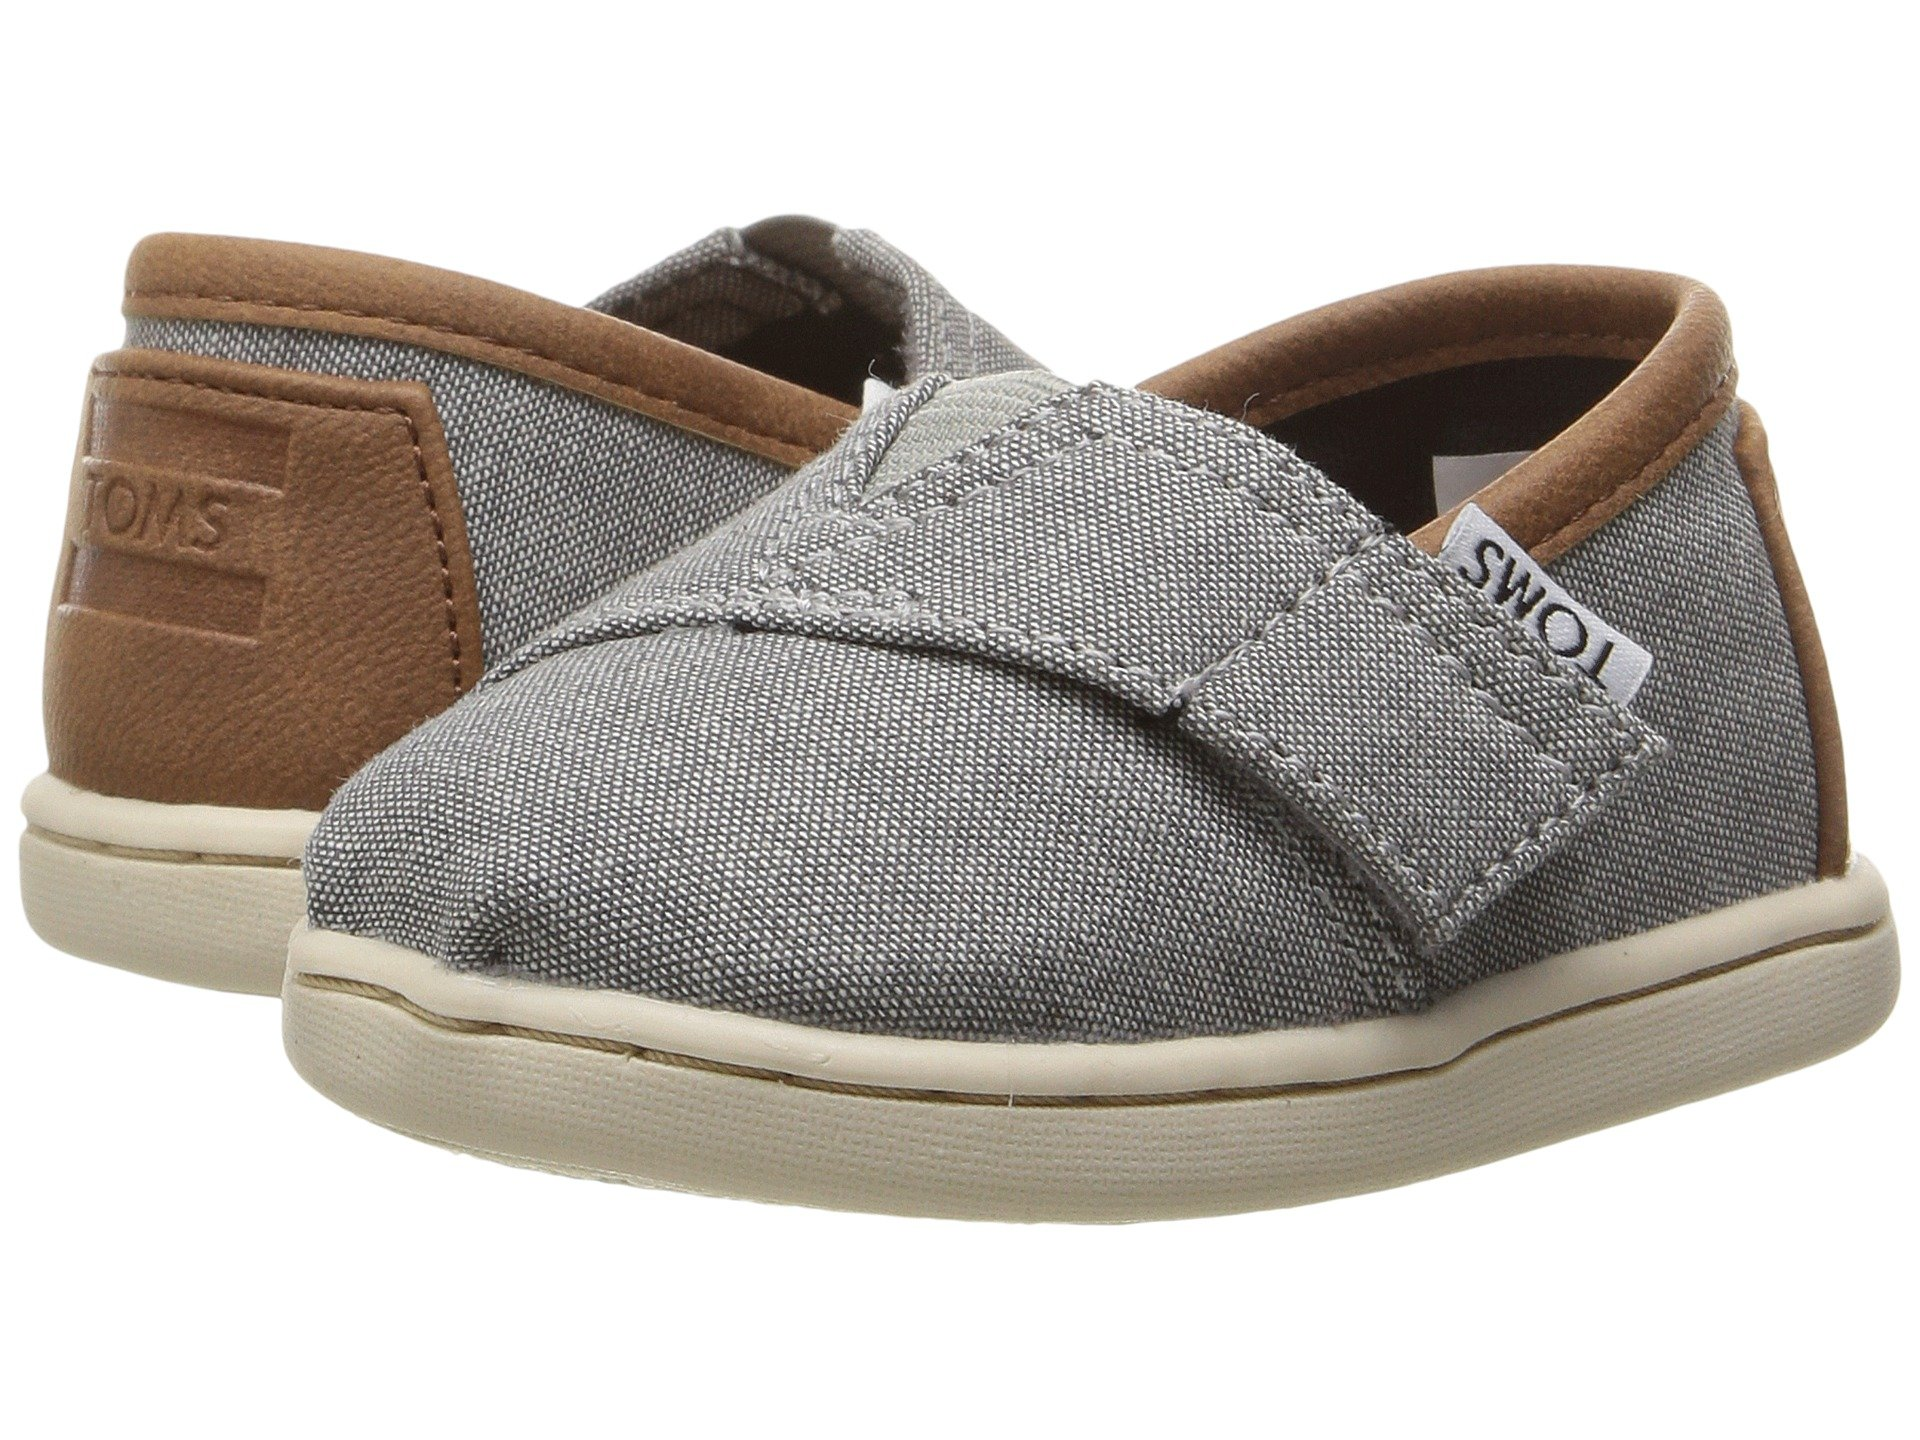 a22acba23fe39e Girls Loafers + FREE SHIPPING